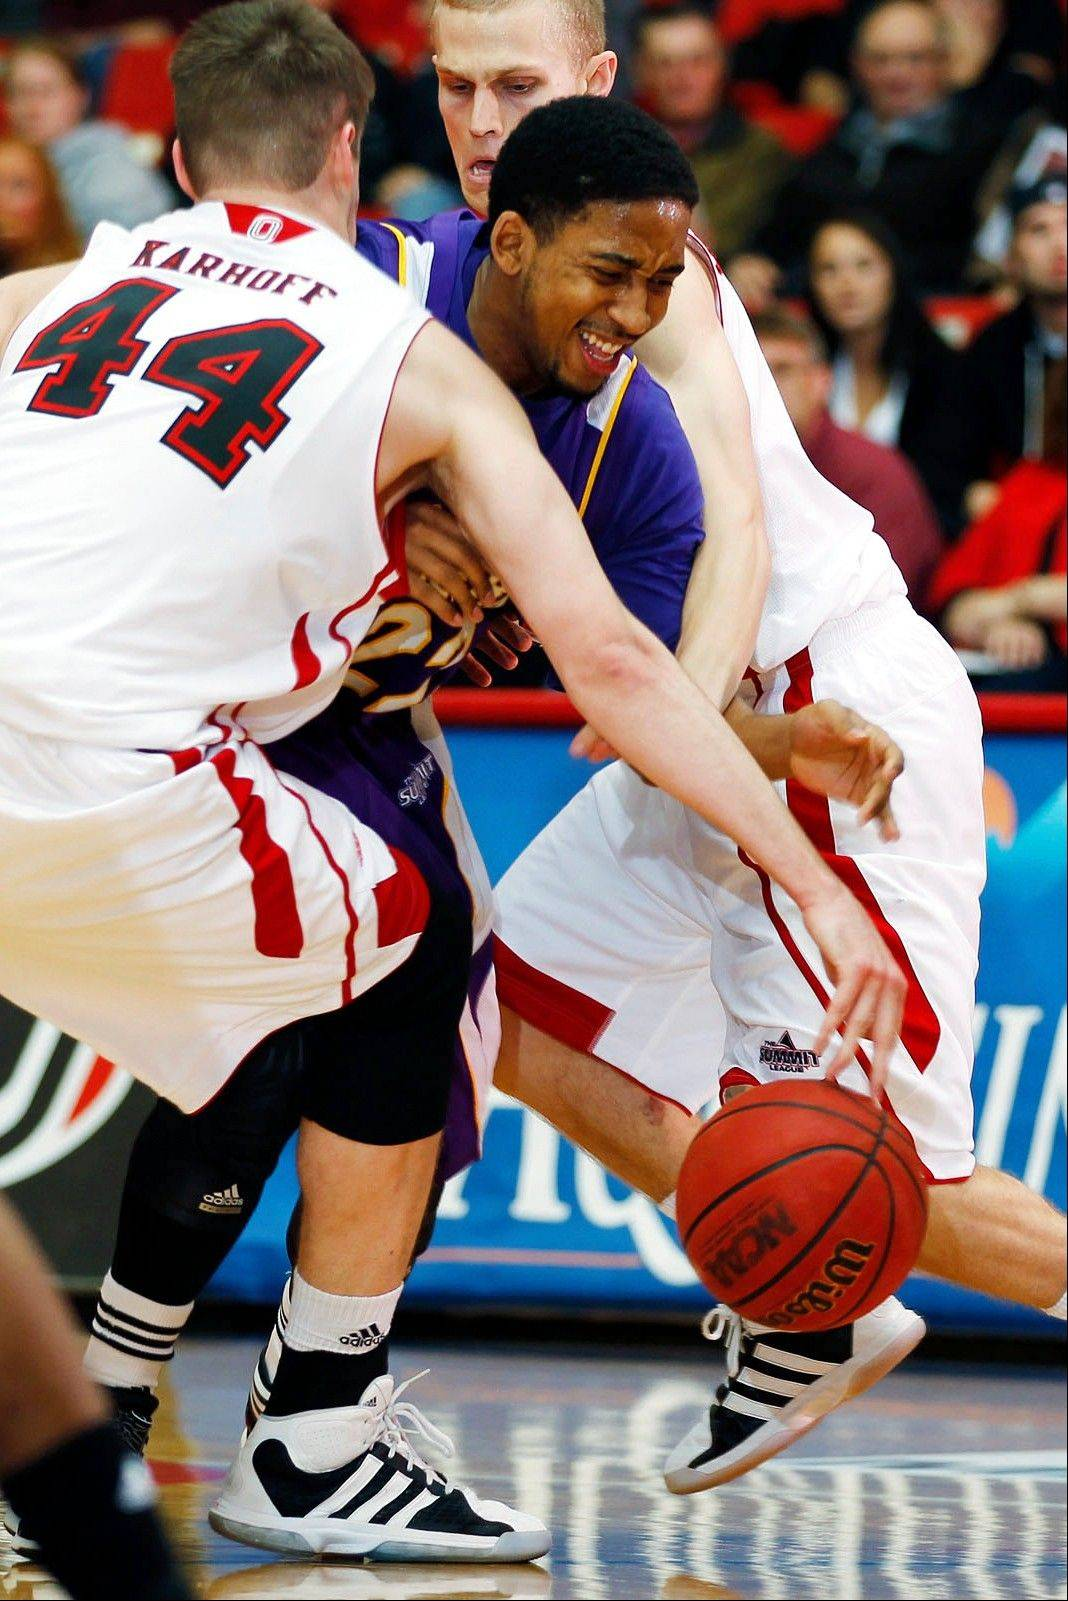 Western Illinois' Ceola Clark tries to split a double team last season in a game at Nebraska-Omaha.